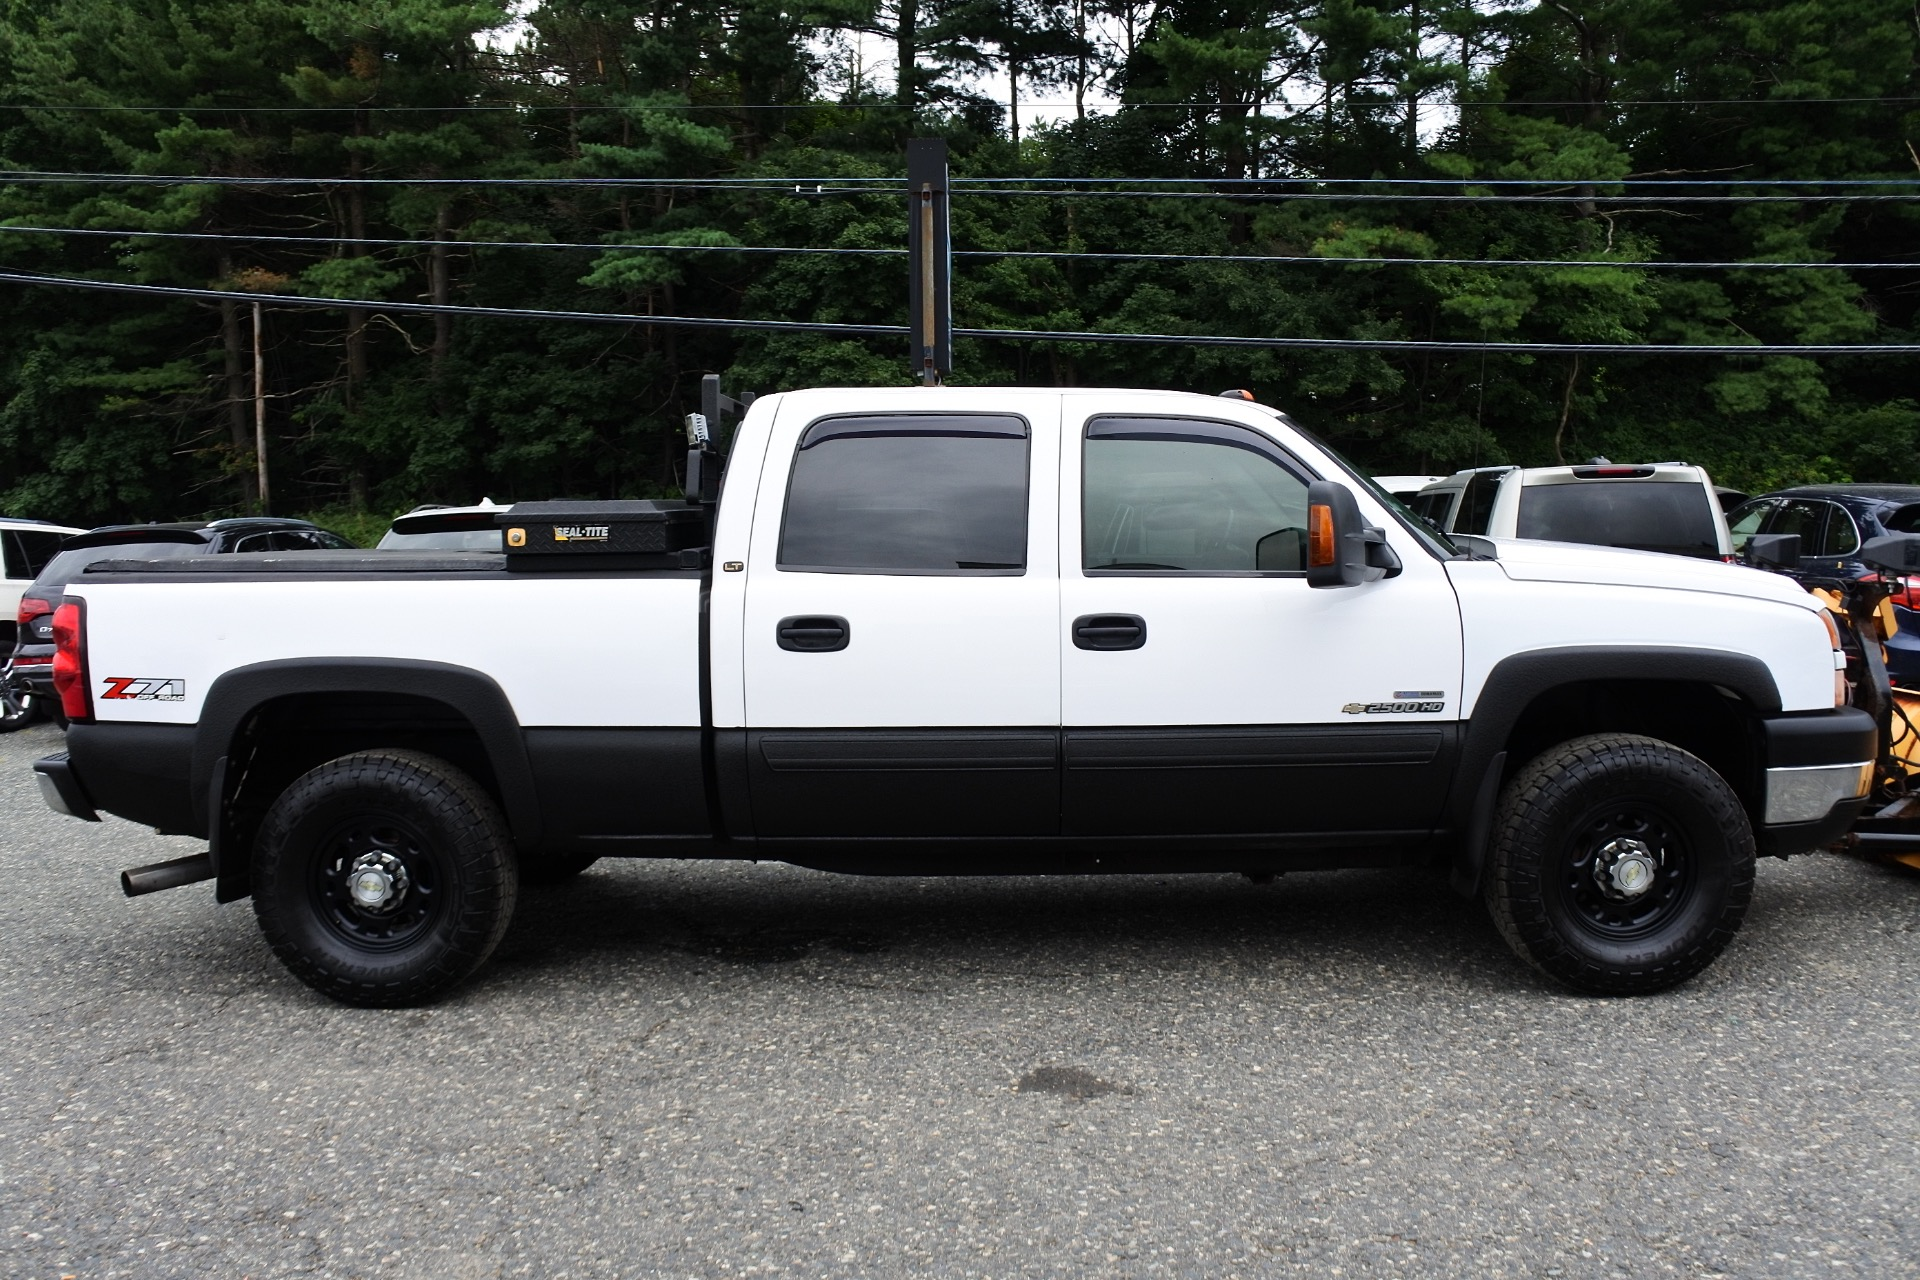 Used 2006 Chevrolet Silverado 2500hd Crew Cab 153' WB 4WD LT3 Used 2006 Chevrolet Silverado 2500hd Crew Cab 153' WB 4WD LT3 for sale  at Metro West Motorcars LLC in Shrewsbury MA 6